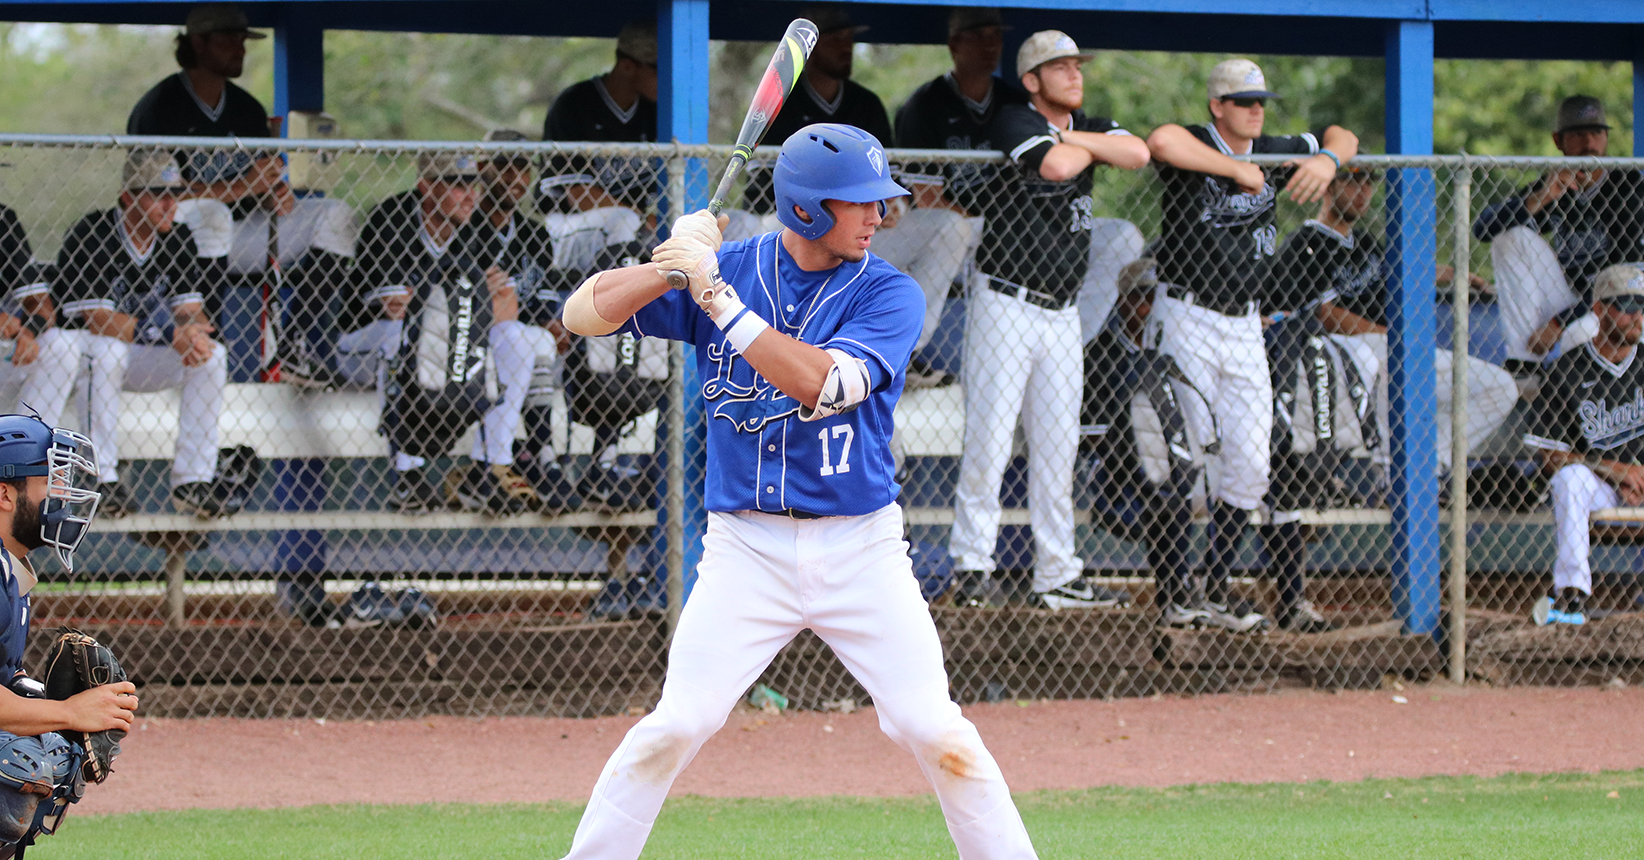 No. 23 Baseball Explodes for Season High in Runs, Hits in Victory Against Owls